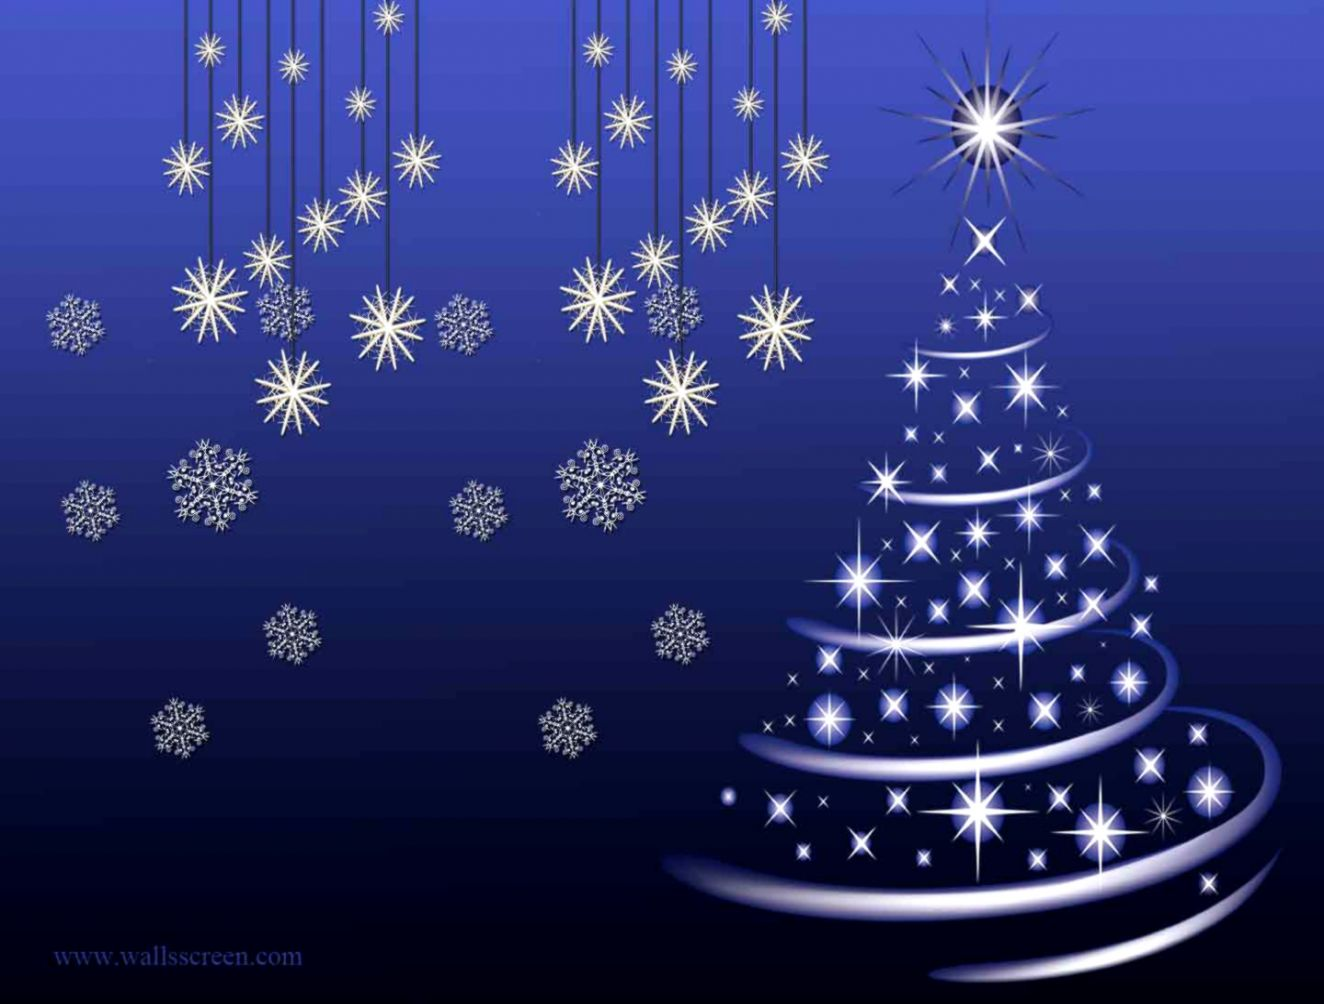 Christmas Background Wallpaper Nice Wallpapers 1324x1004